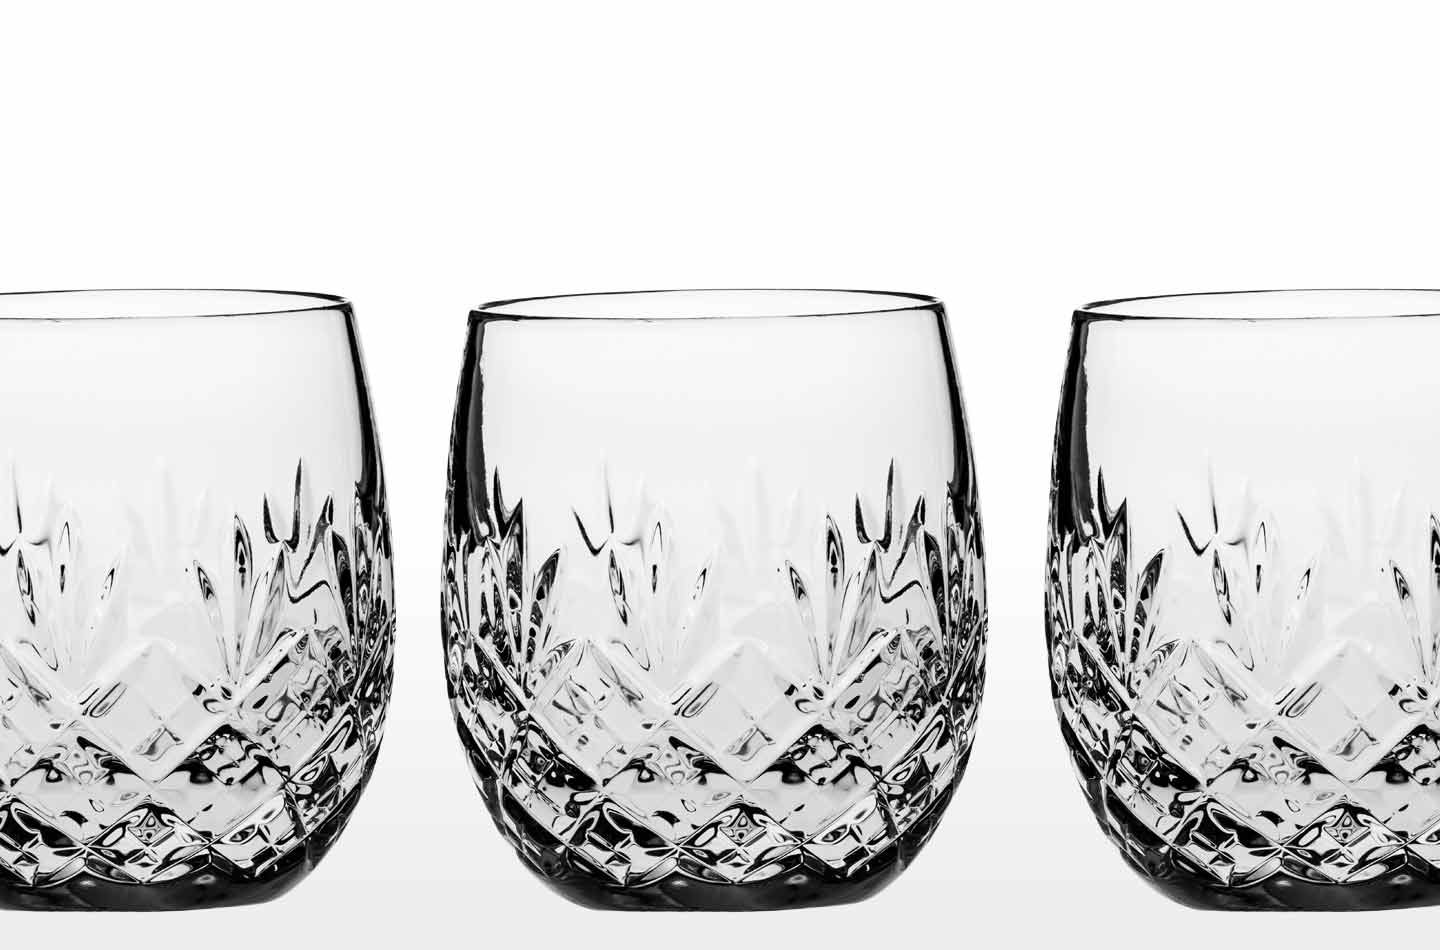 Fine Crystal Whisky Glasses and Double Old Fashioned